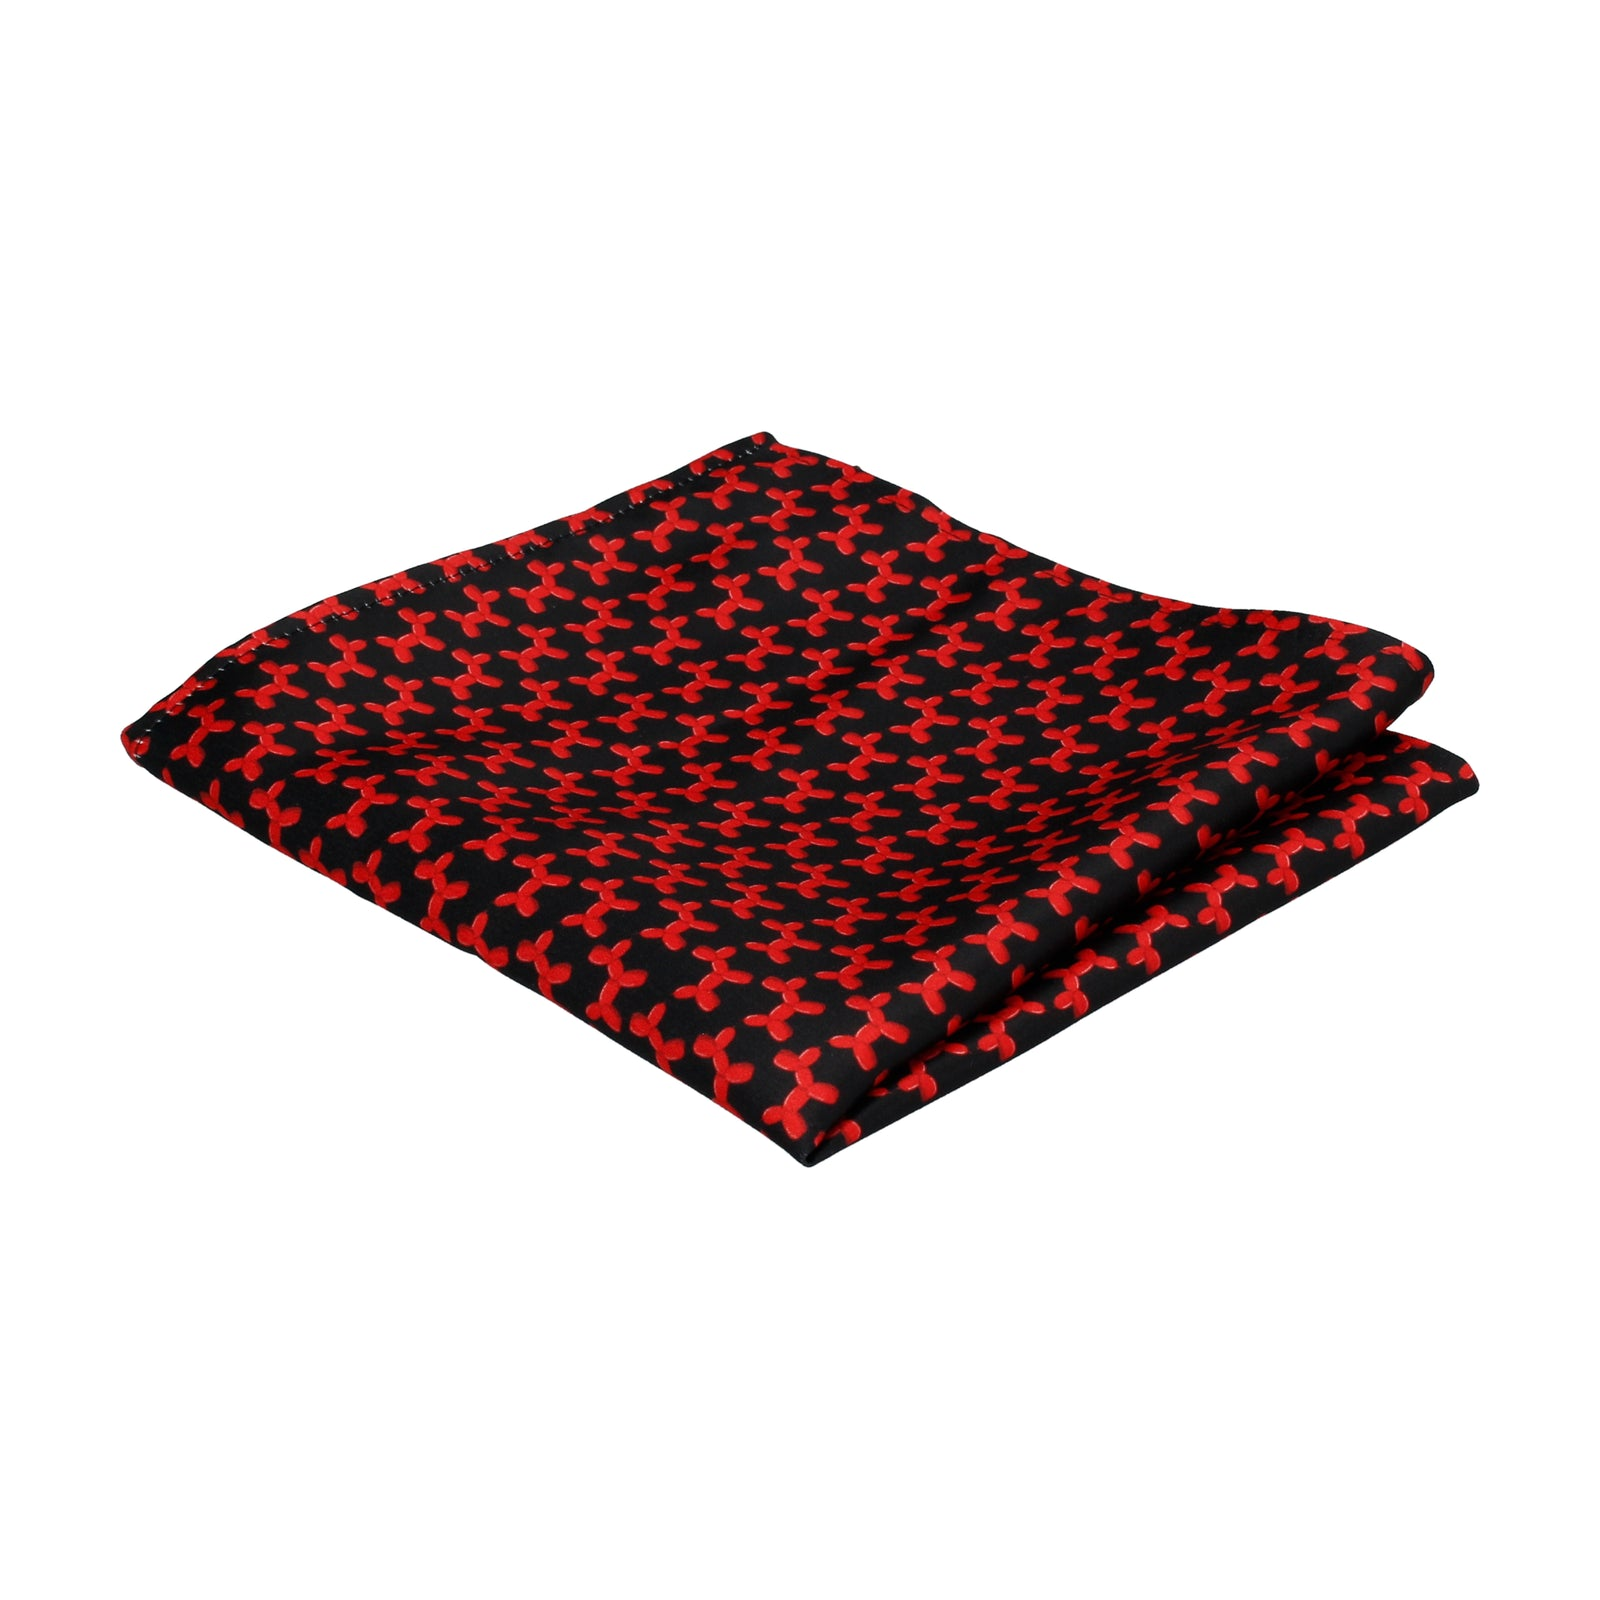 Black & Red Balloon Dogs Pocket Square